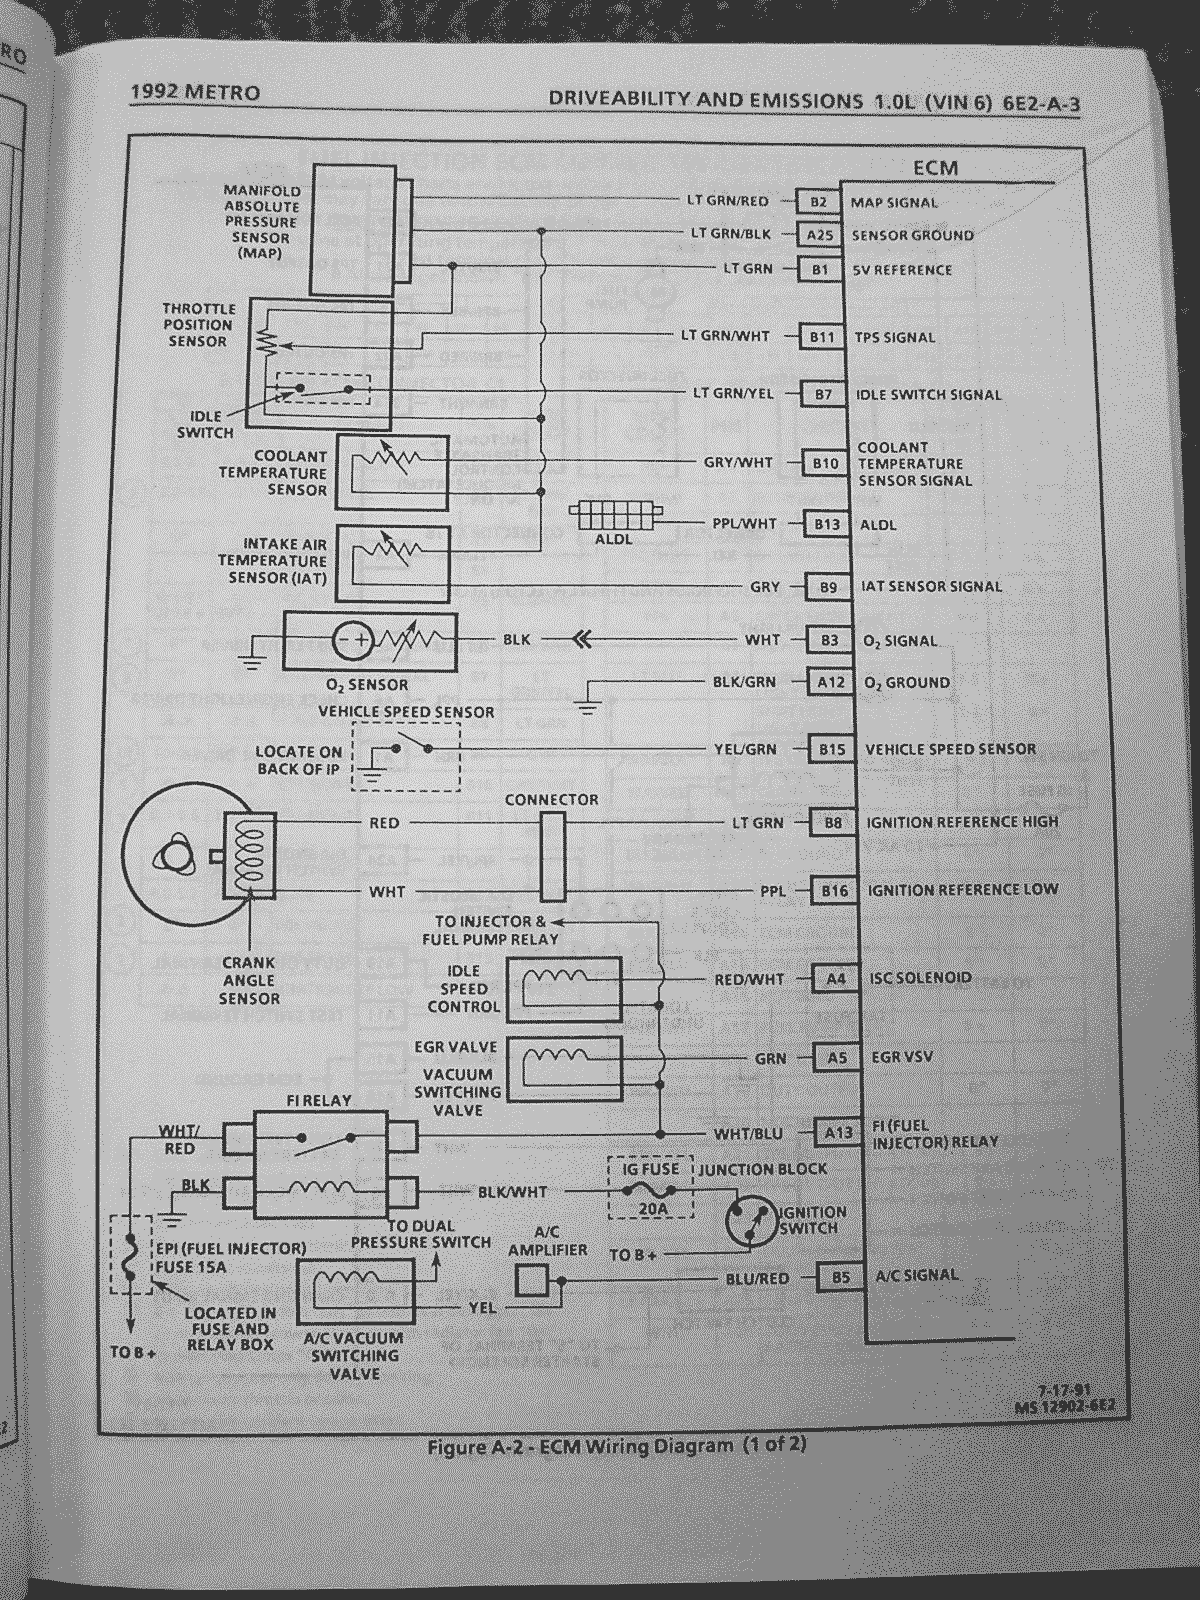 1992 Kenworth T600 Wiring Diagram | Best Wiring Liry on kenworth wiring diagram, kenworth ac filter, kenworth wiring harness, kenworth battery cables,